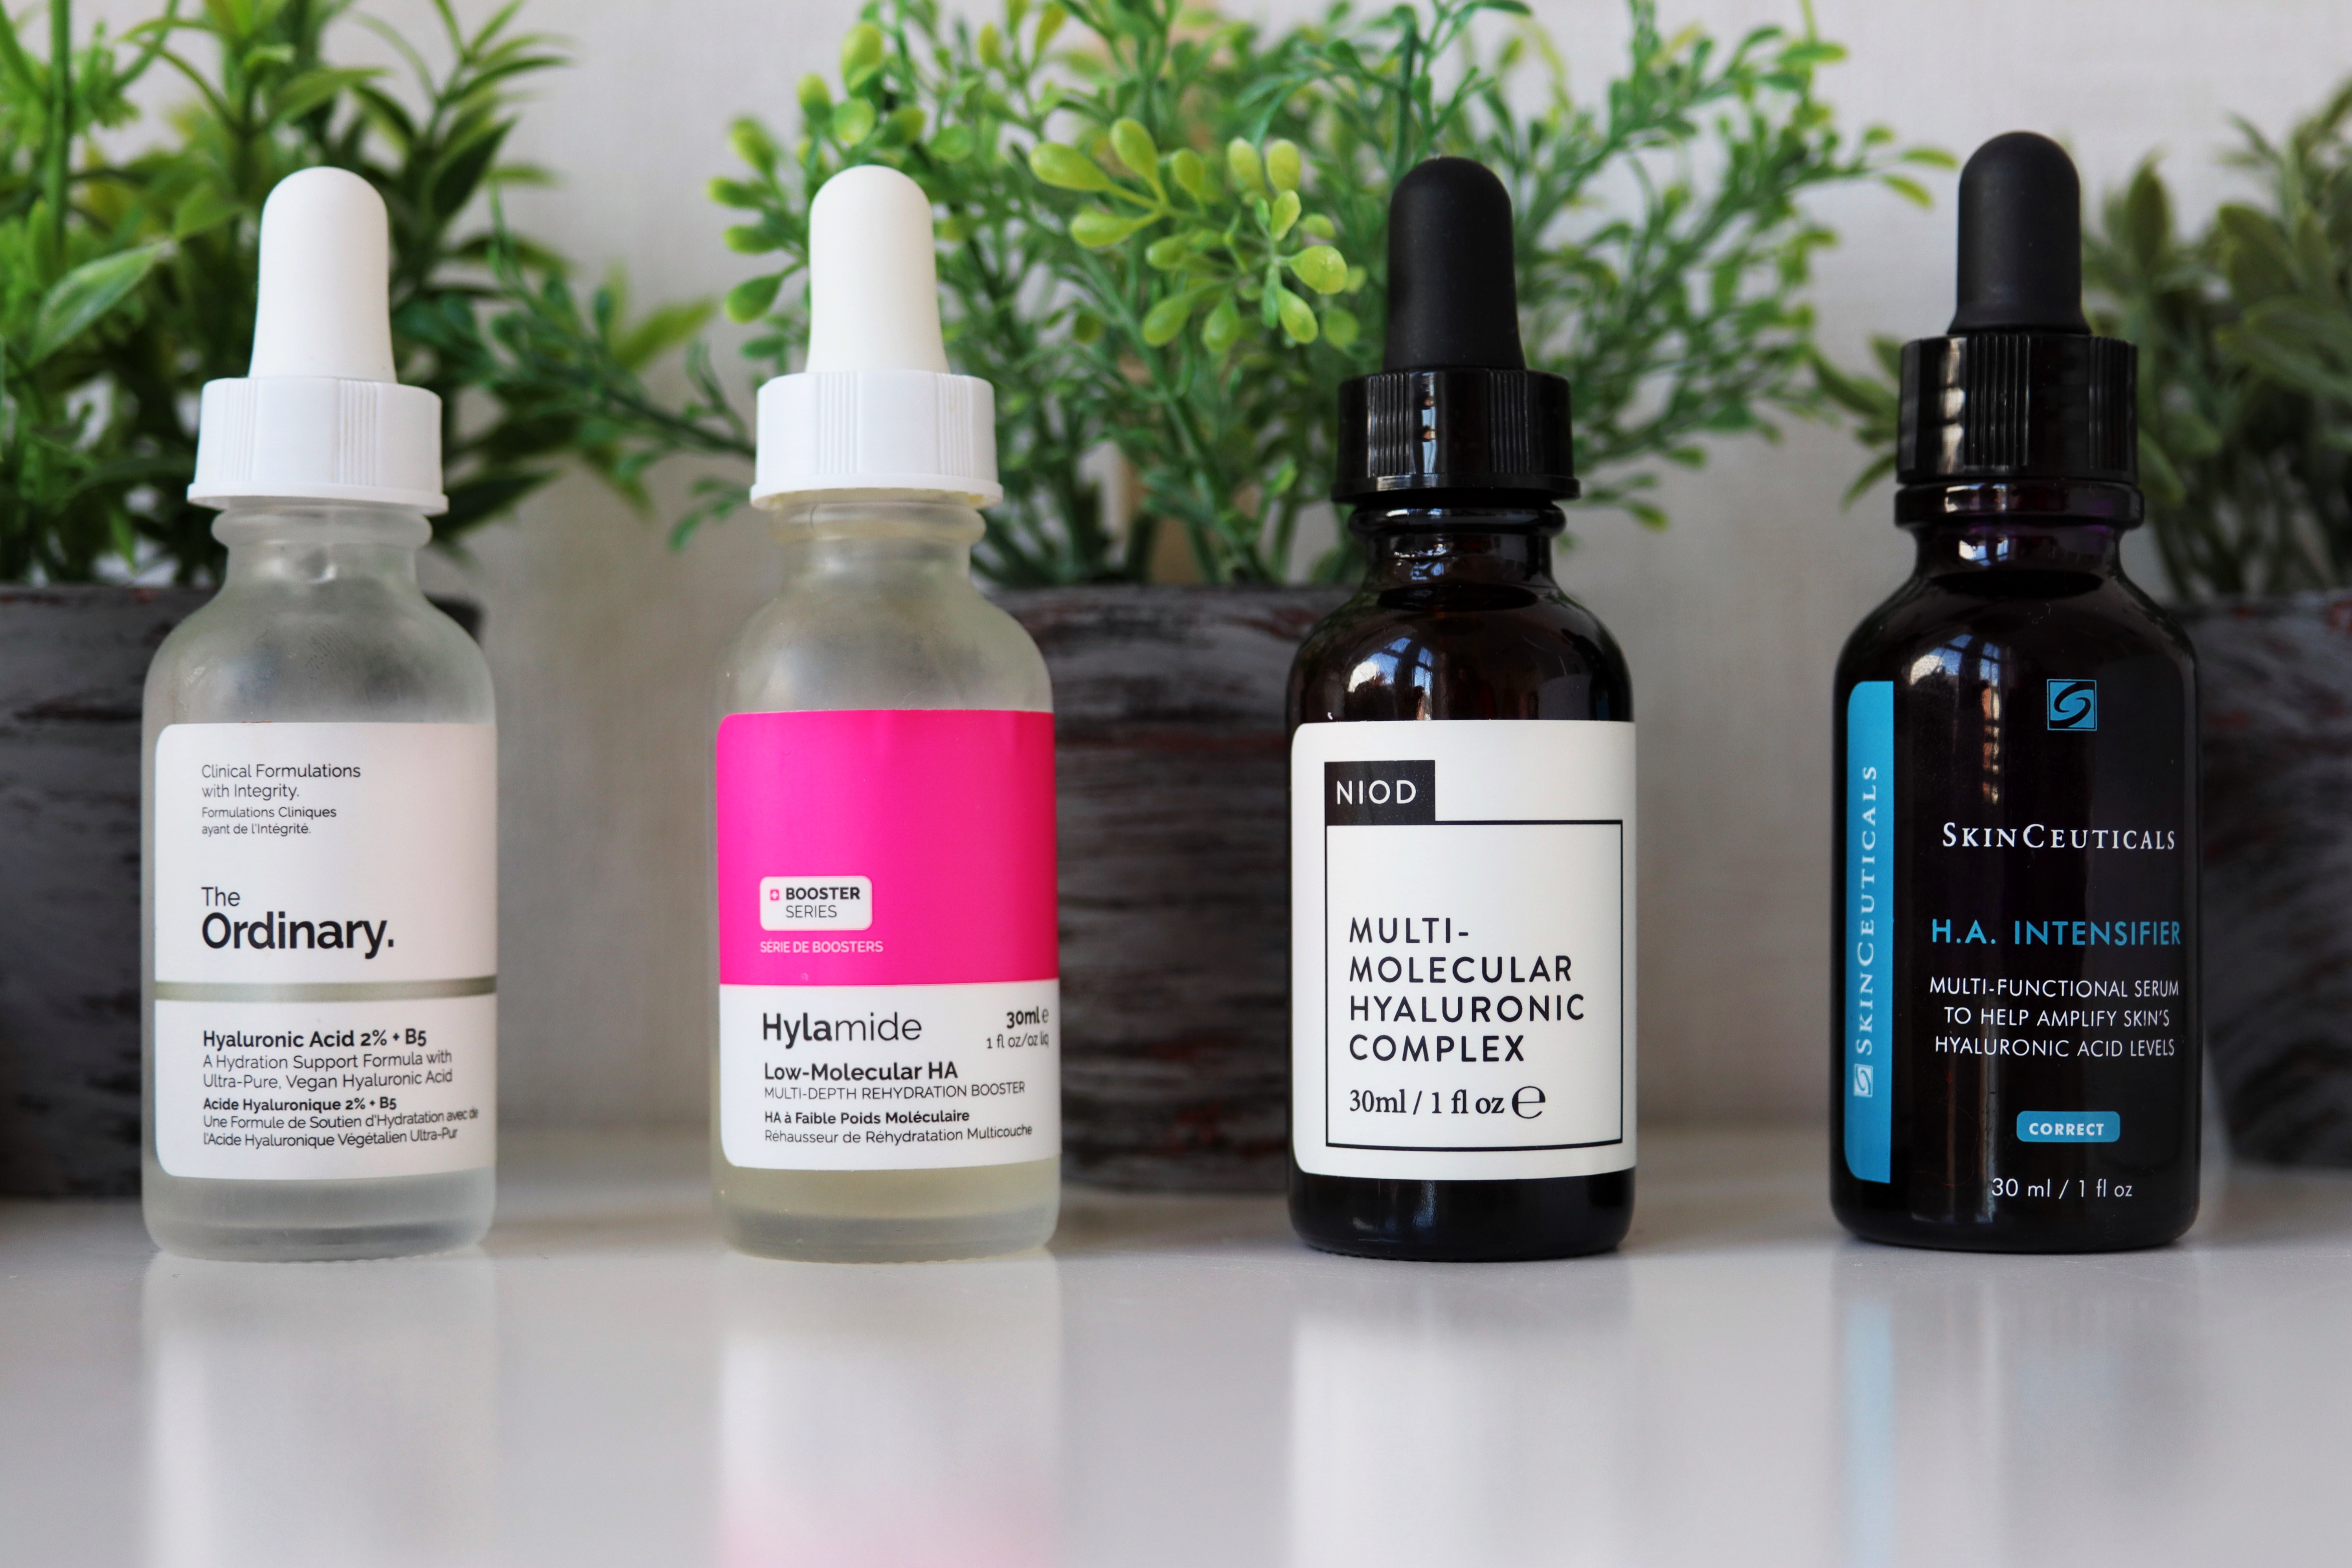 Four bottles of serums sitting on a white desk top. Behind the bottles, slightly out of focus. are three small herbs posts, green herbs in grey pots. The serum bottles from left to right are: The Ordinary hyaluronic acid (clear body, white label, black writing). Hyalmide hyaluronic acid, clear bottle, pink and white label, black writing. NIOD Muli-molecular hyaluronic acid, dark brown bottle, white label, black writing. Skinceuticals H.A Intensifier, Brown bottle, White and bright blue writing.